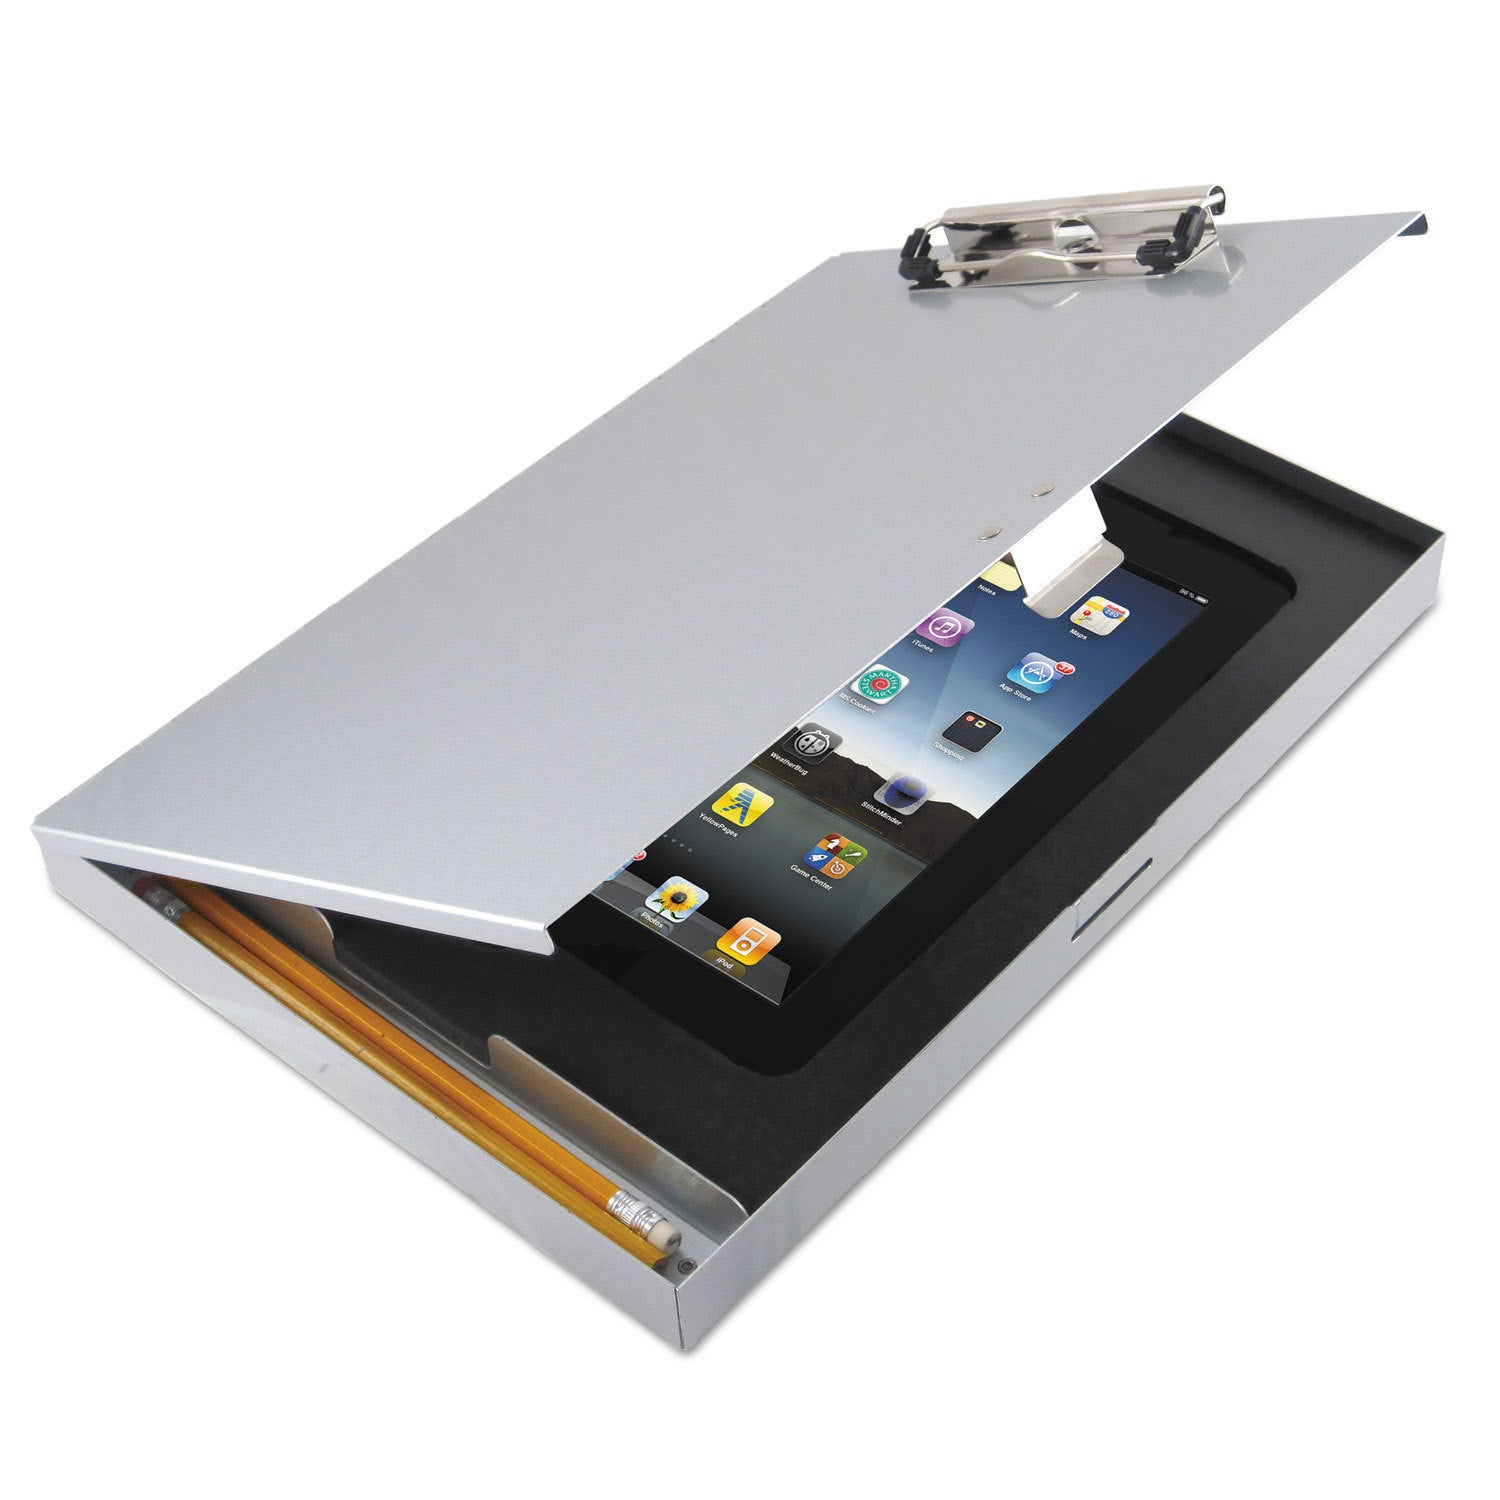 Shop Saunders Tuffwriter Recycled Aluminum Storage Clipboard For IPad Air 8  1/2 X 12 Silver   Free Shipping Today   Overstock.com   13986133